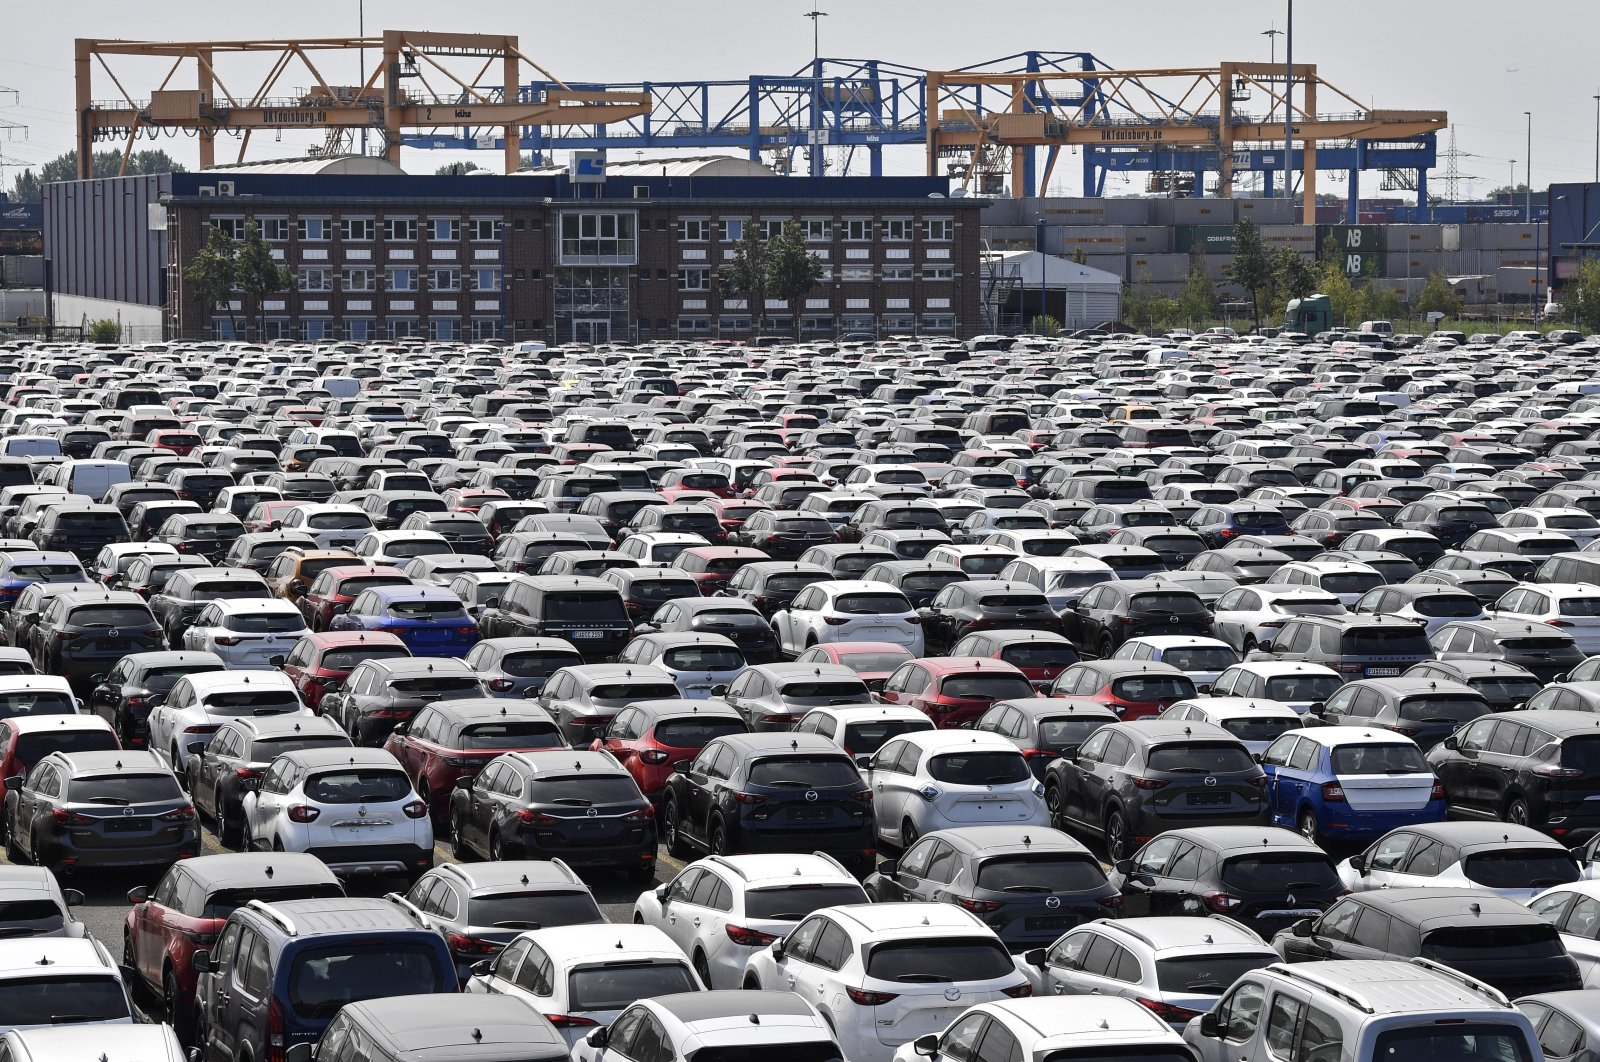 New cars are stored at the 'logport' (logistic port) in Duisburg, Germany, Wednesday, June 3, 2020. (AP Photo)